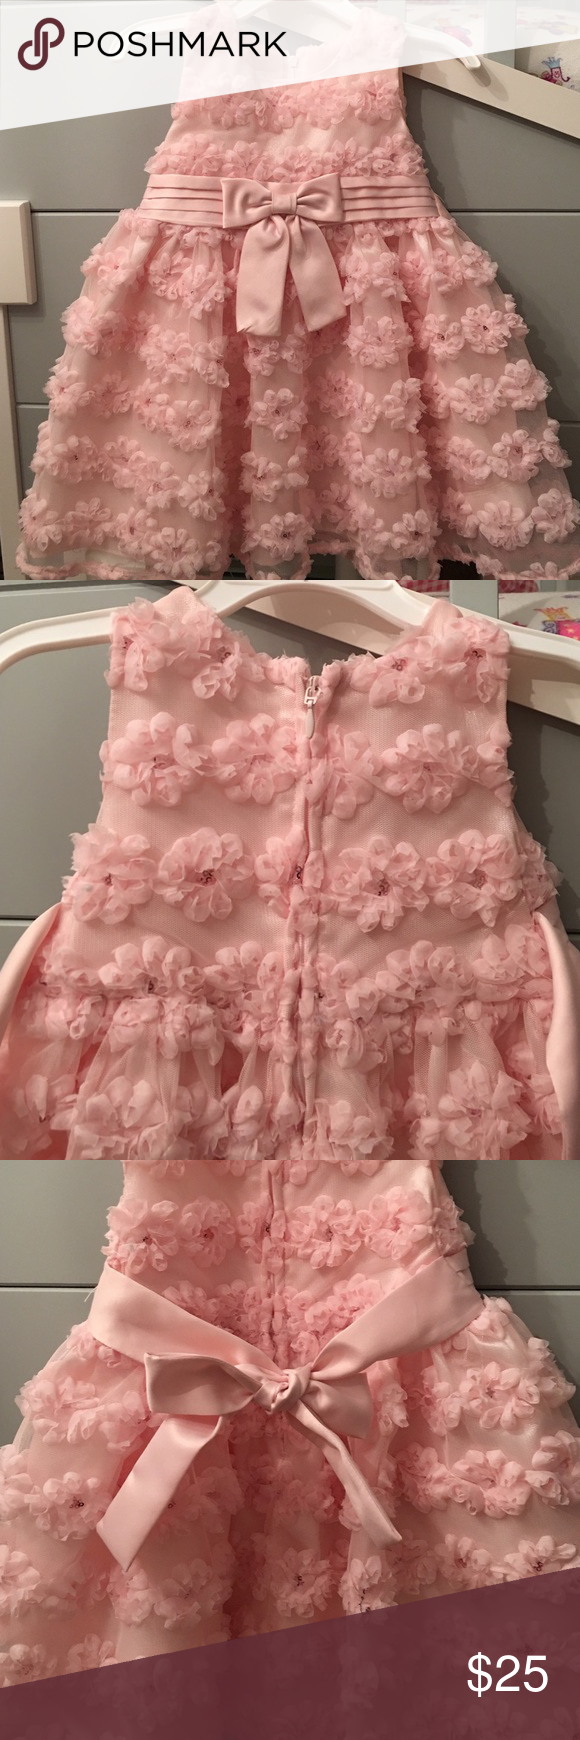 Pink floral toddler dress Pink bow and flower sequence dress iris & ivy Dresses Formal